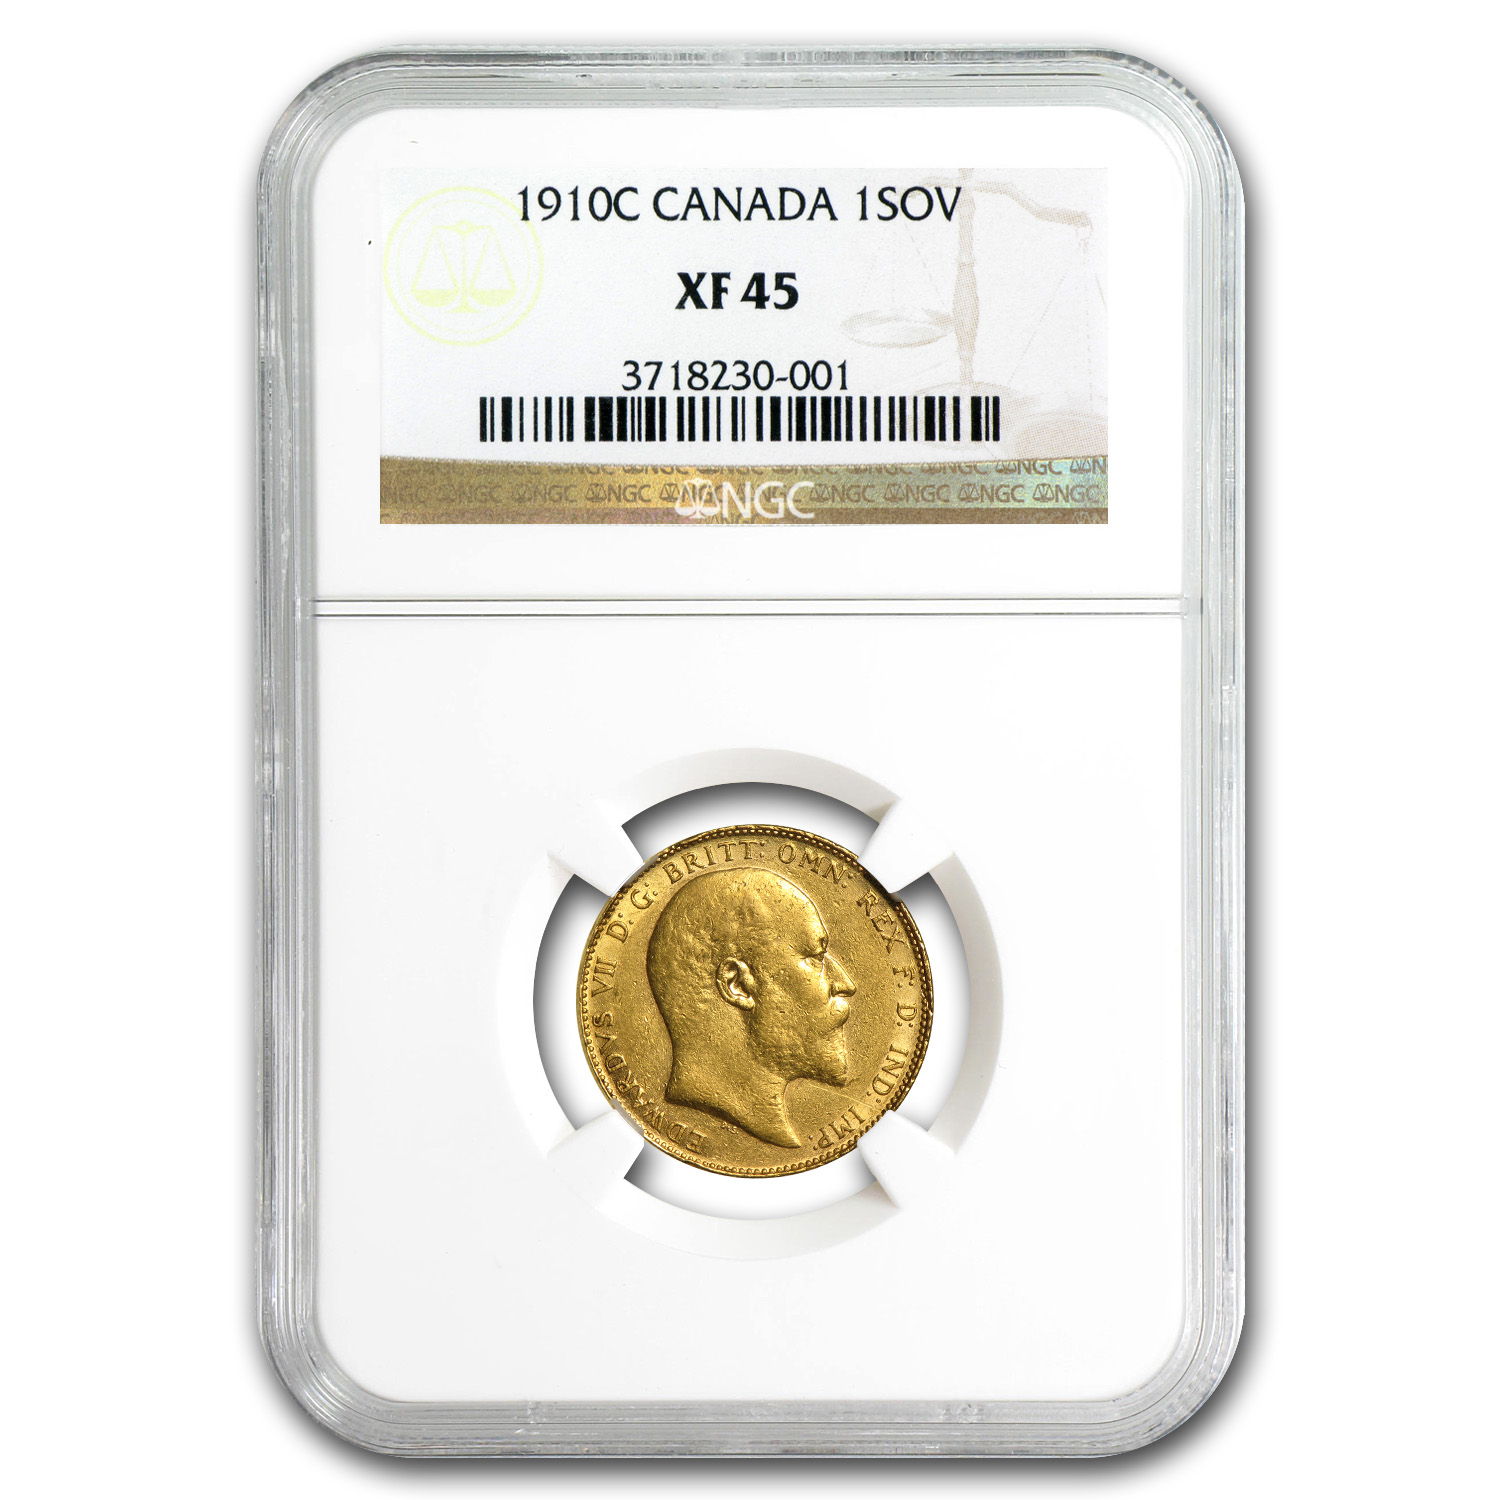 Canada 1910-C Sovereign Gold Edward VII XF-45 NGC